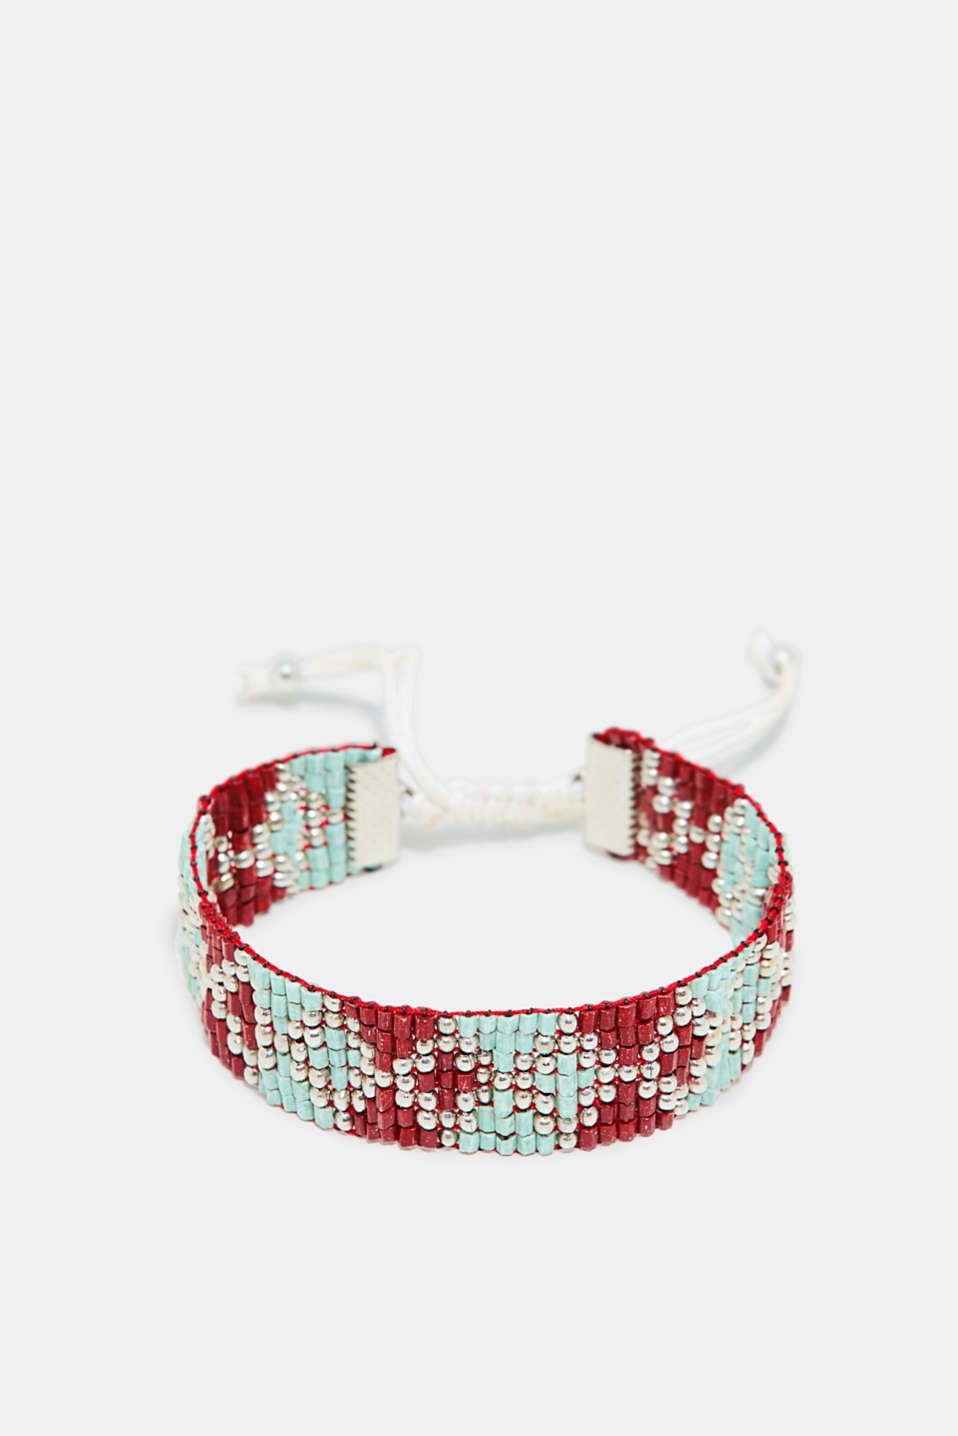 Countless beads in different shapes adorn this bracelet with an adjustable sliding clasp.